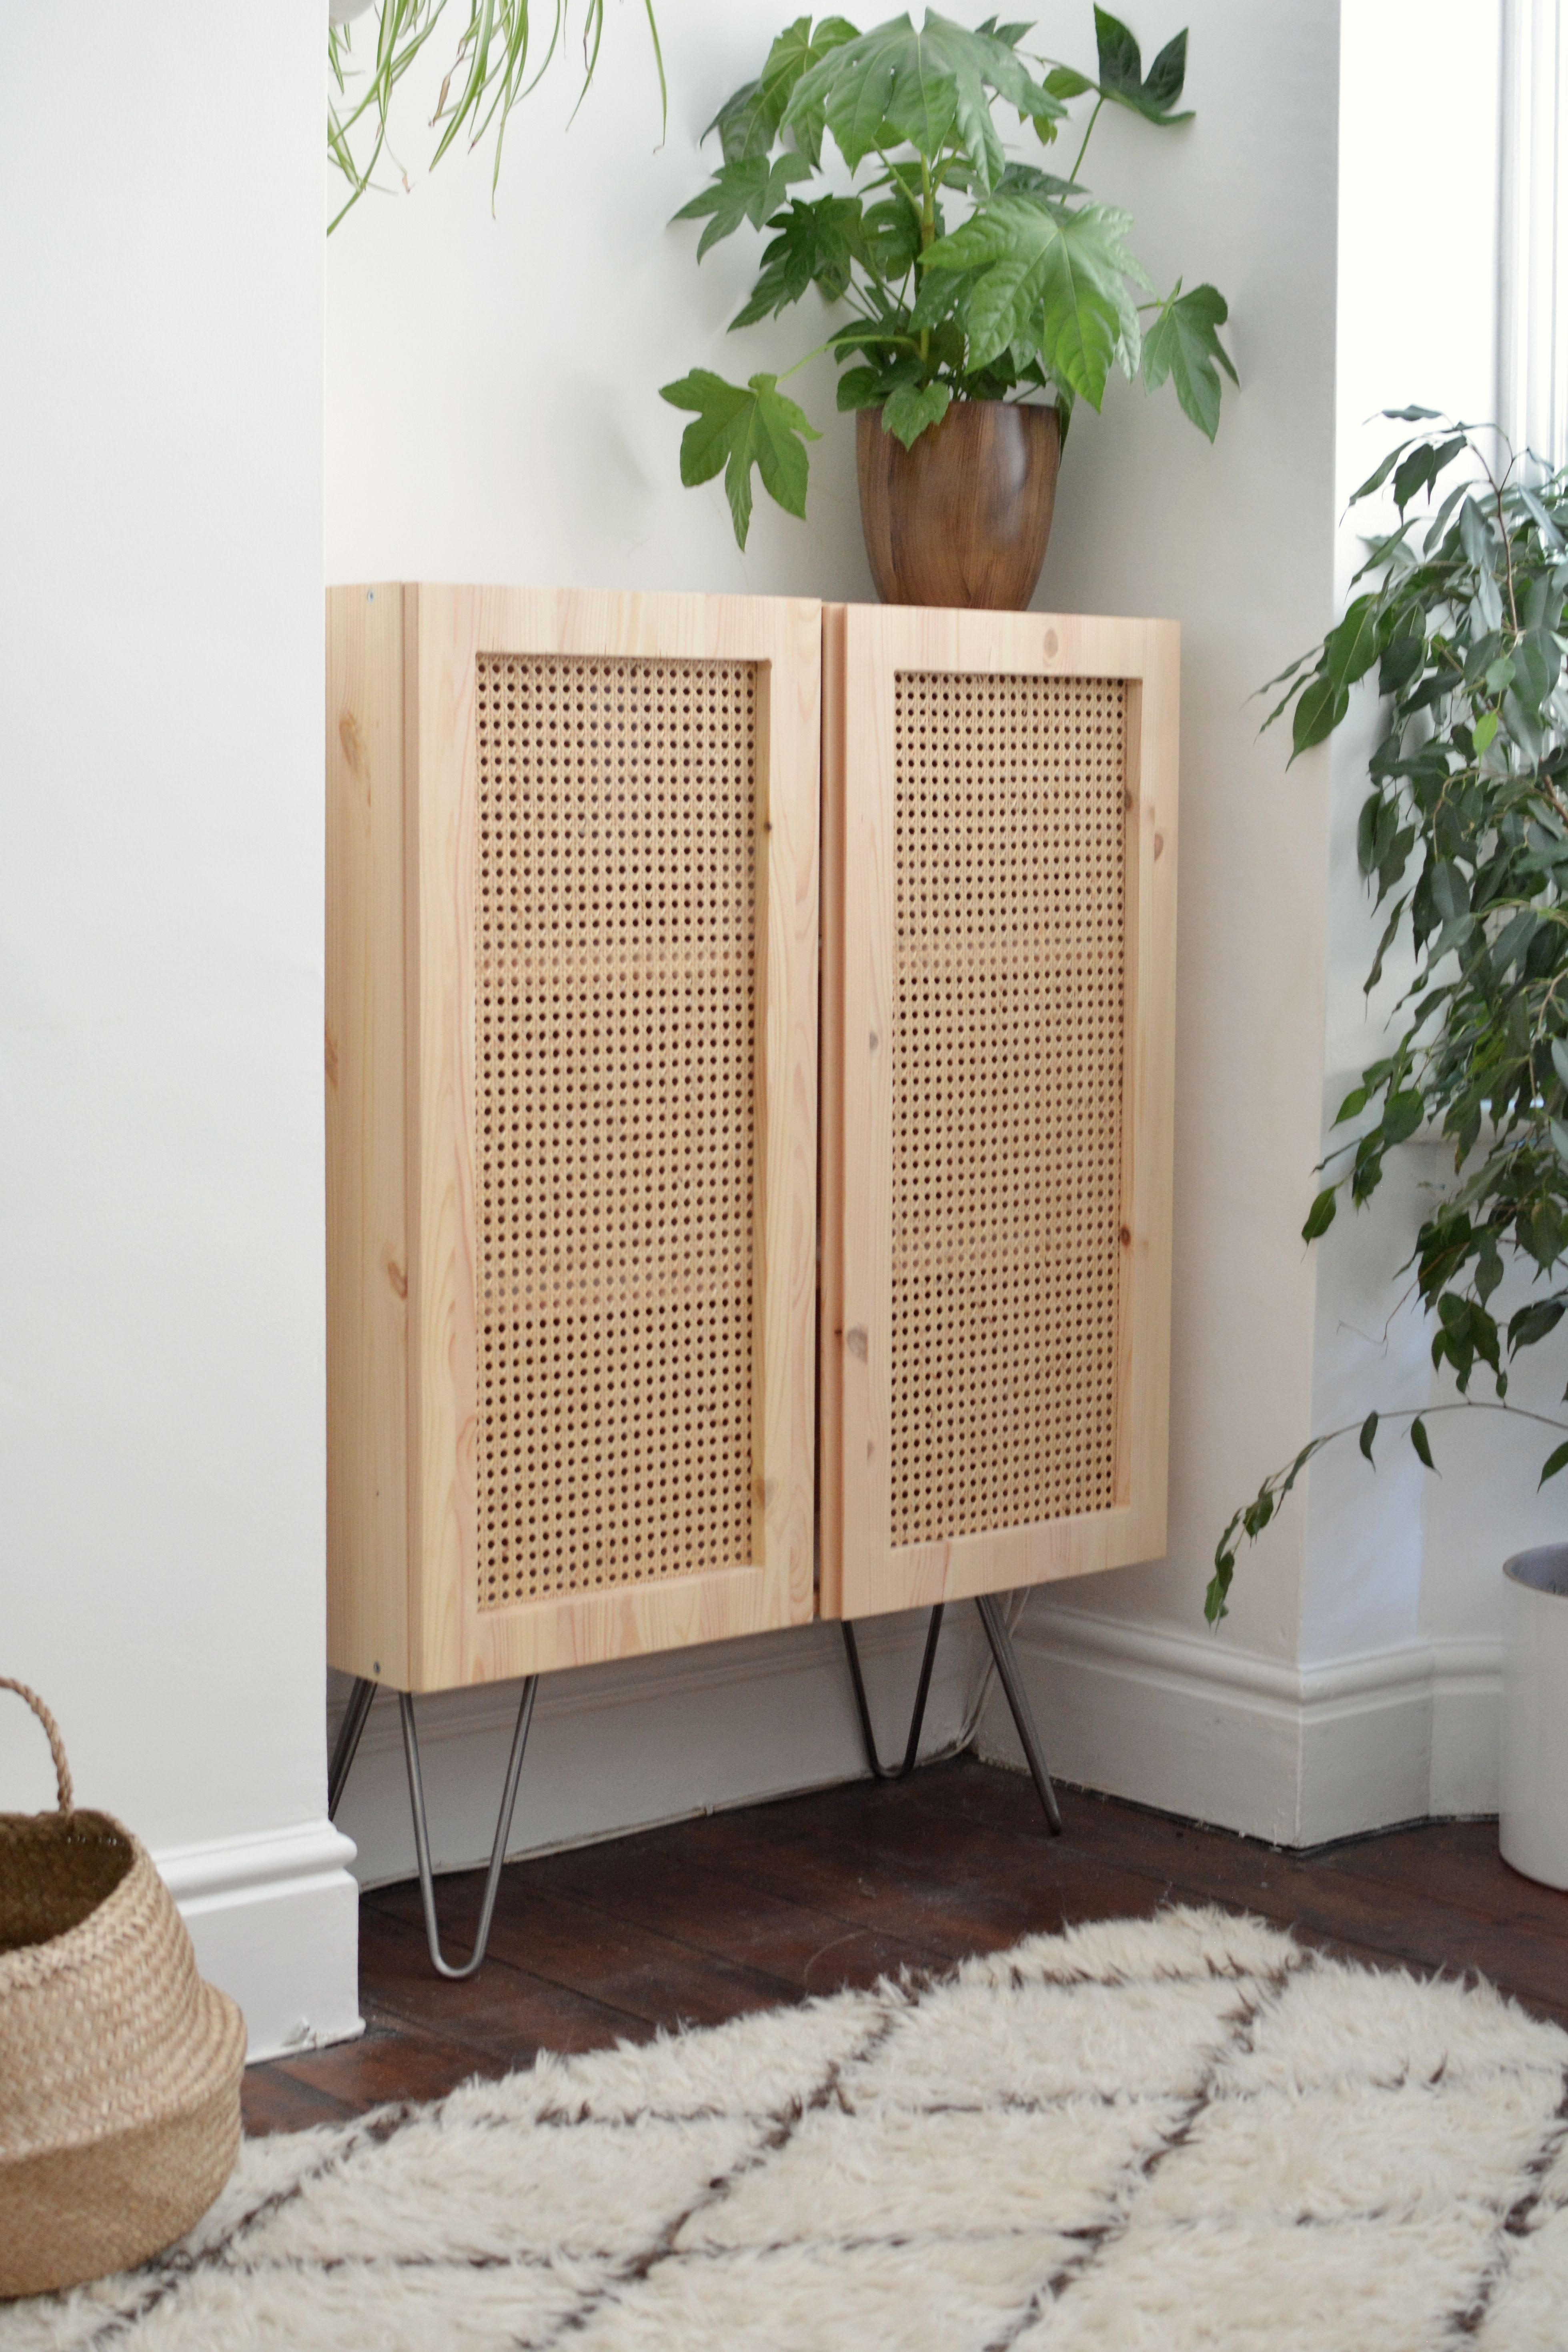 Mobili In Vimini Ikea.This Ikea Hack Uses Cane To Turn A Plain Cabinet Into A